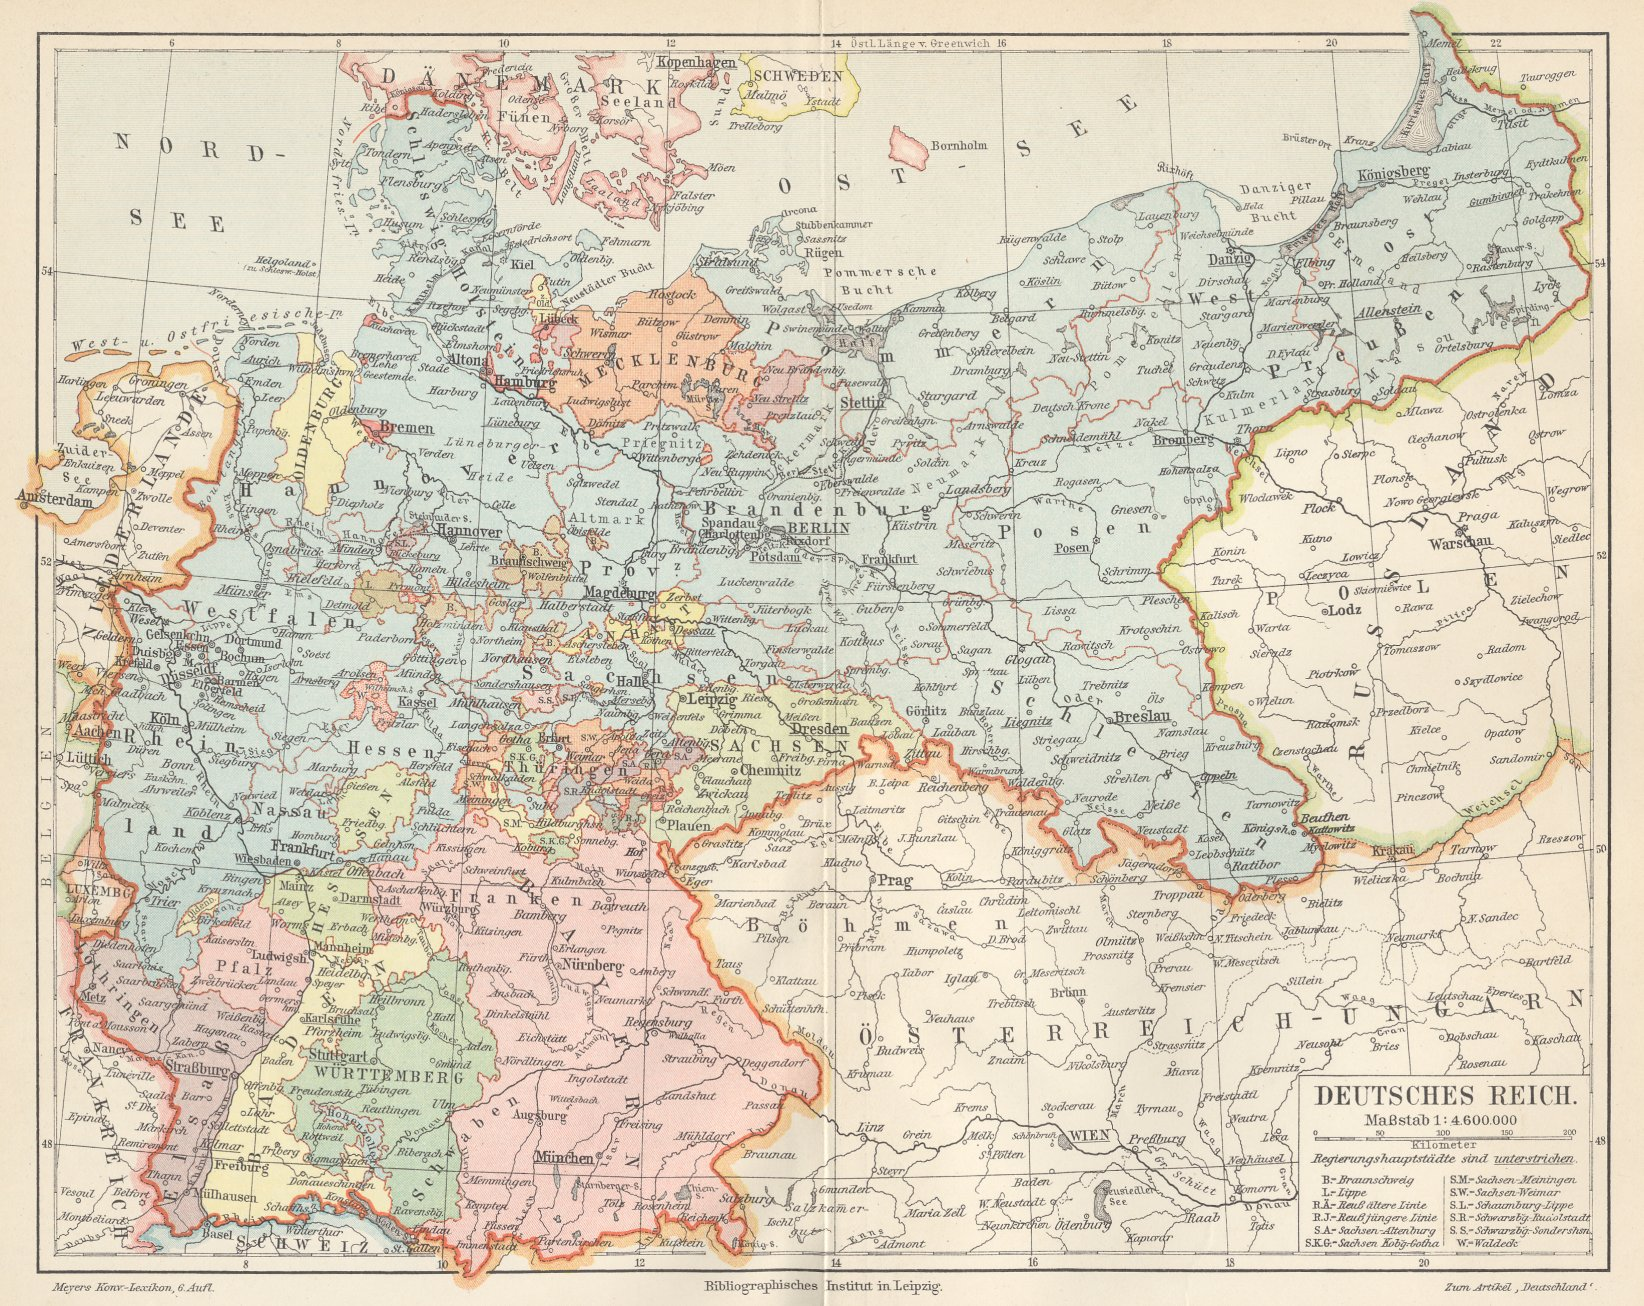 German Empire in 1900